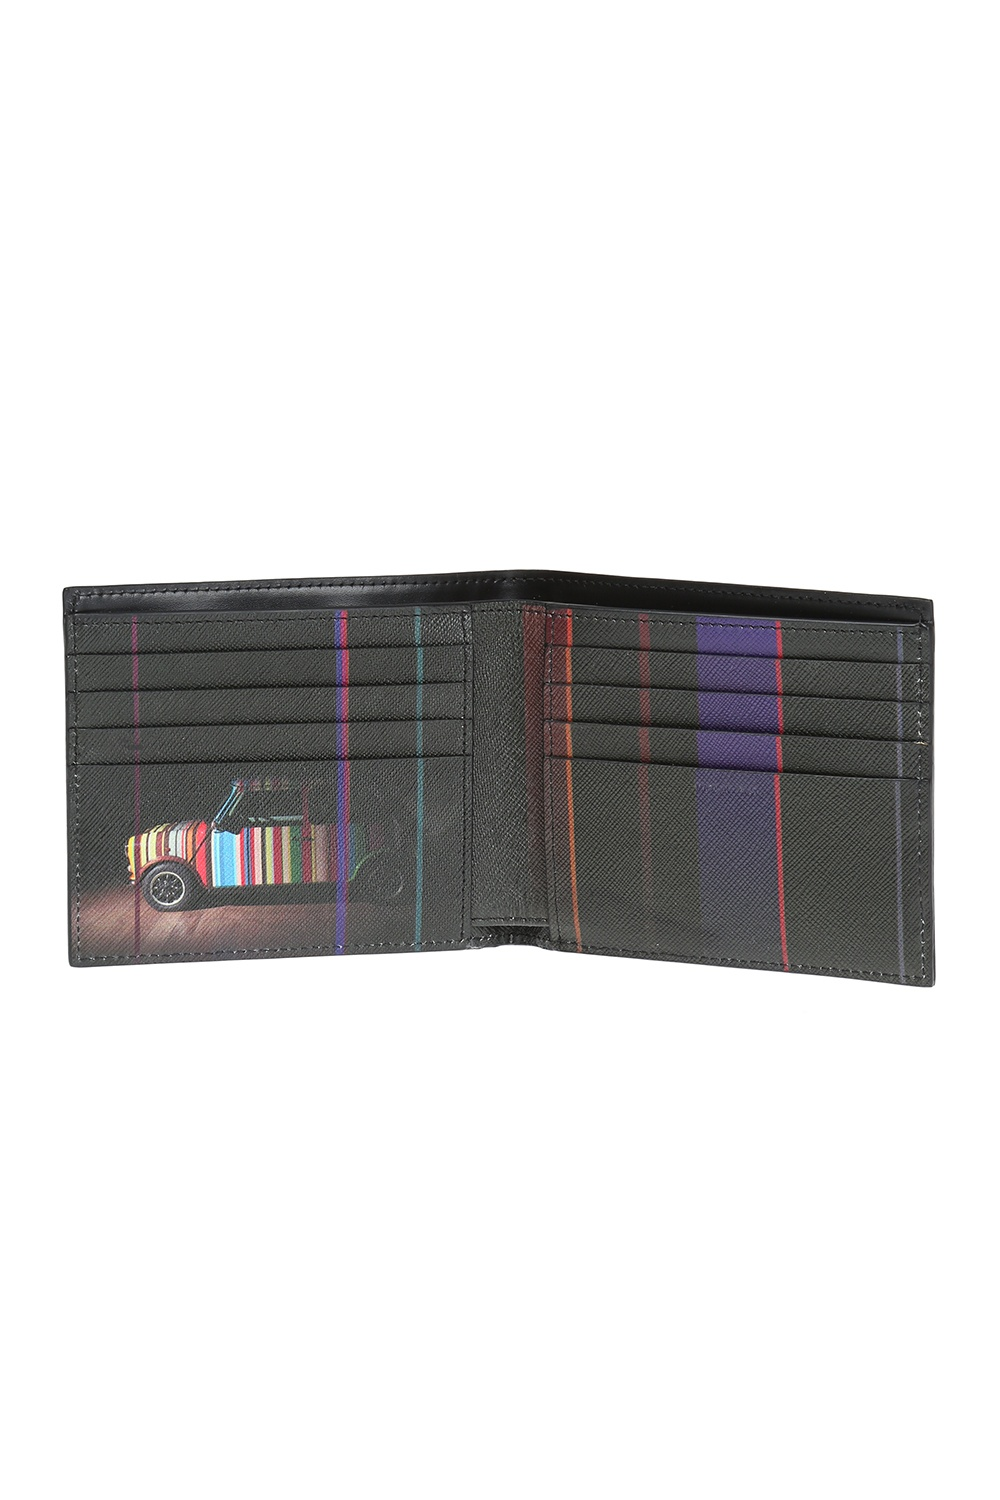 Paul Smith Leather bi-fold wallet